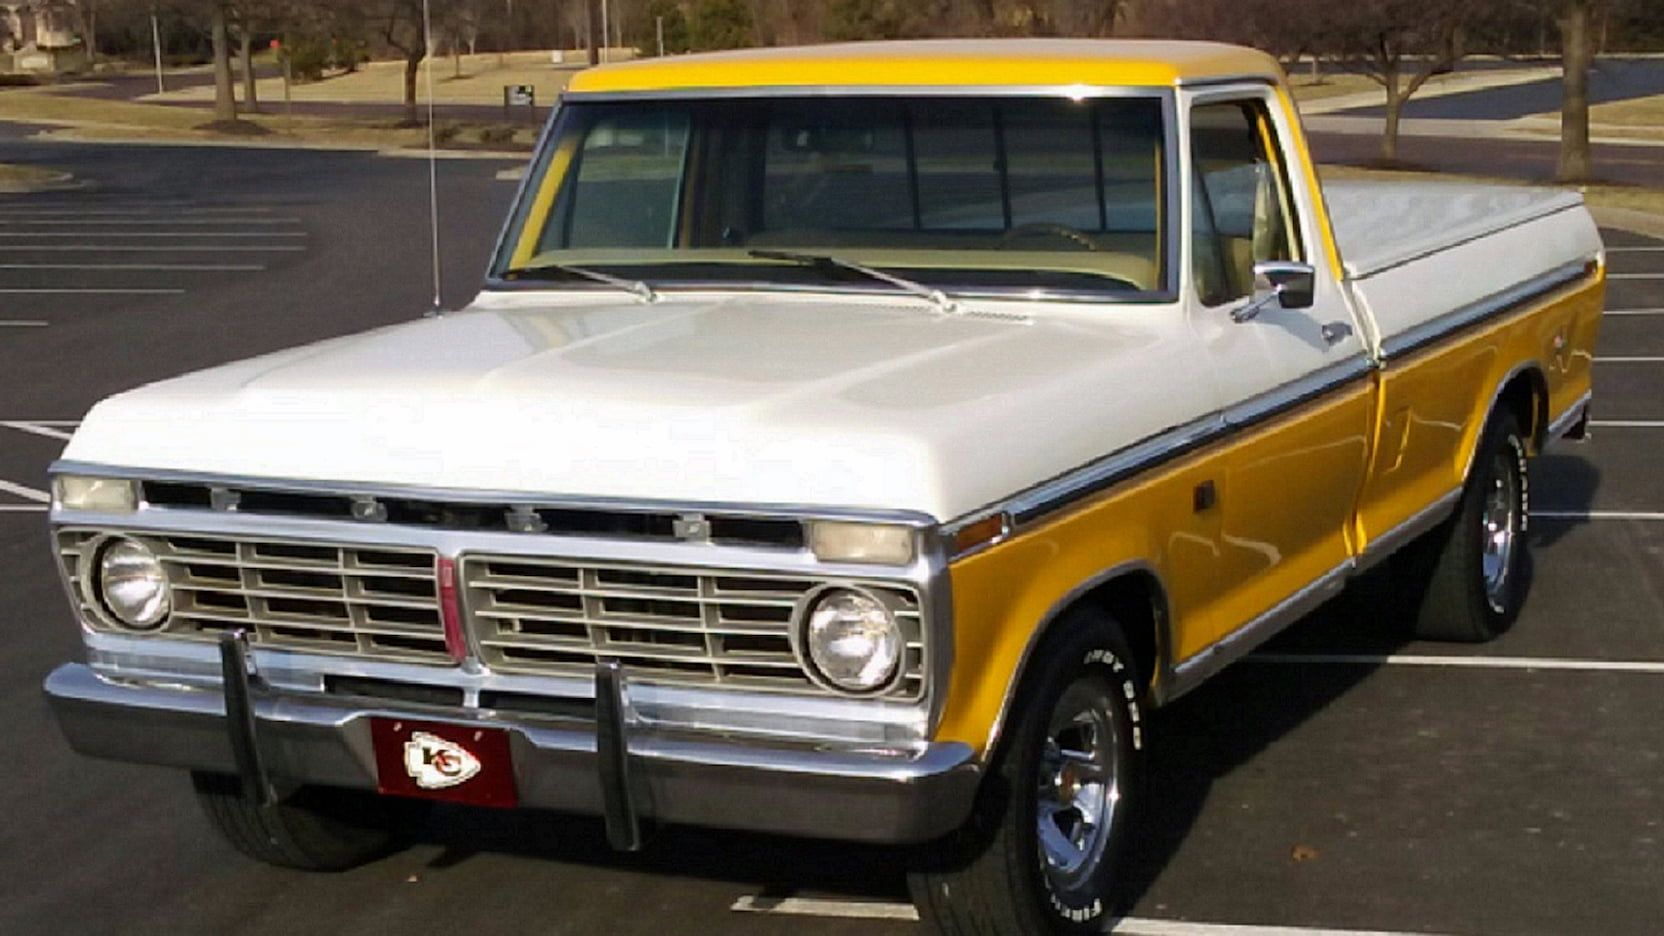 1974 Ford F100 Explorer XLT presented as Lot T41 at Kansas City ...